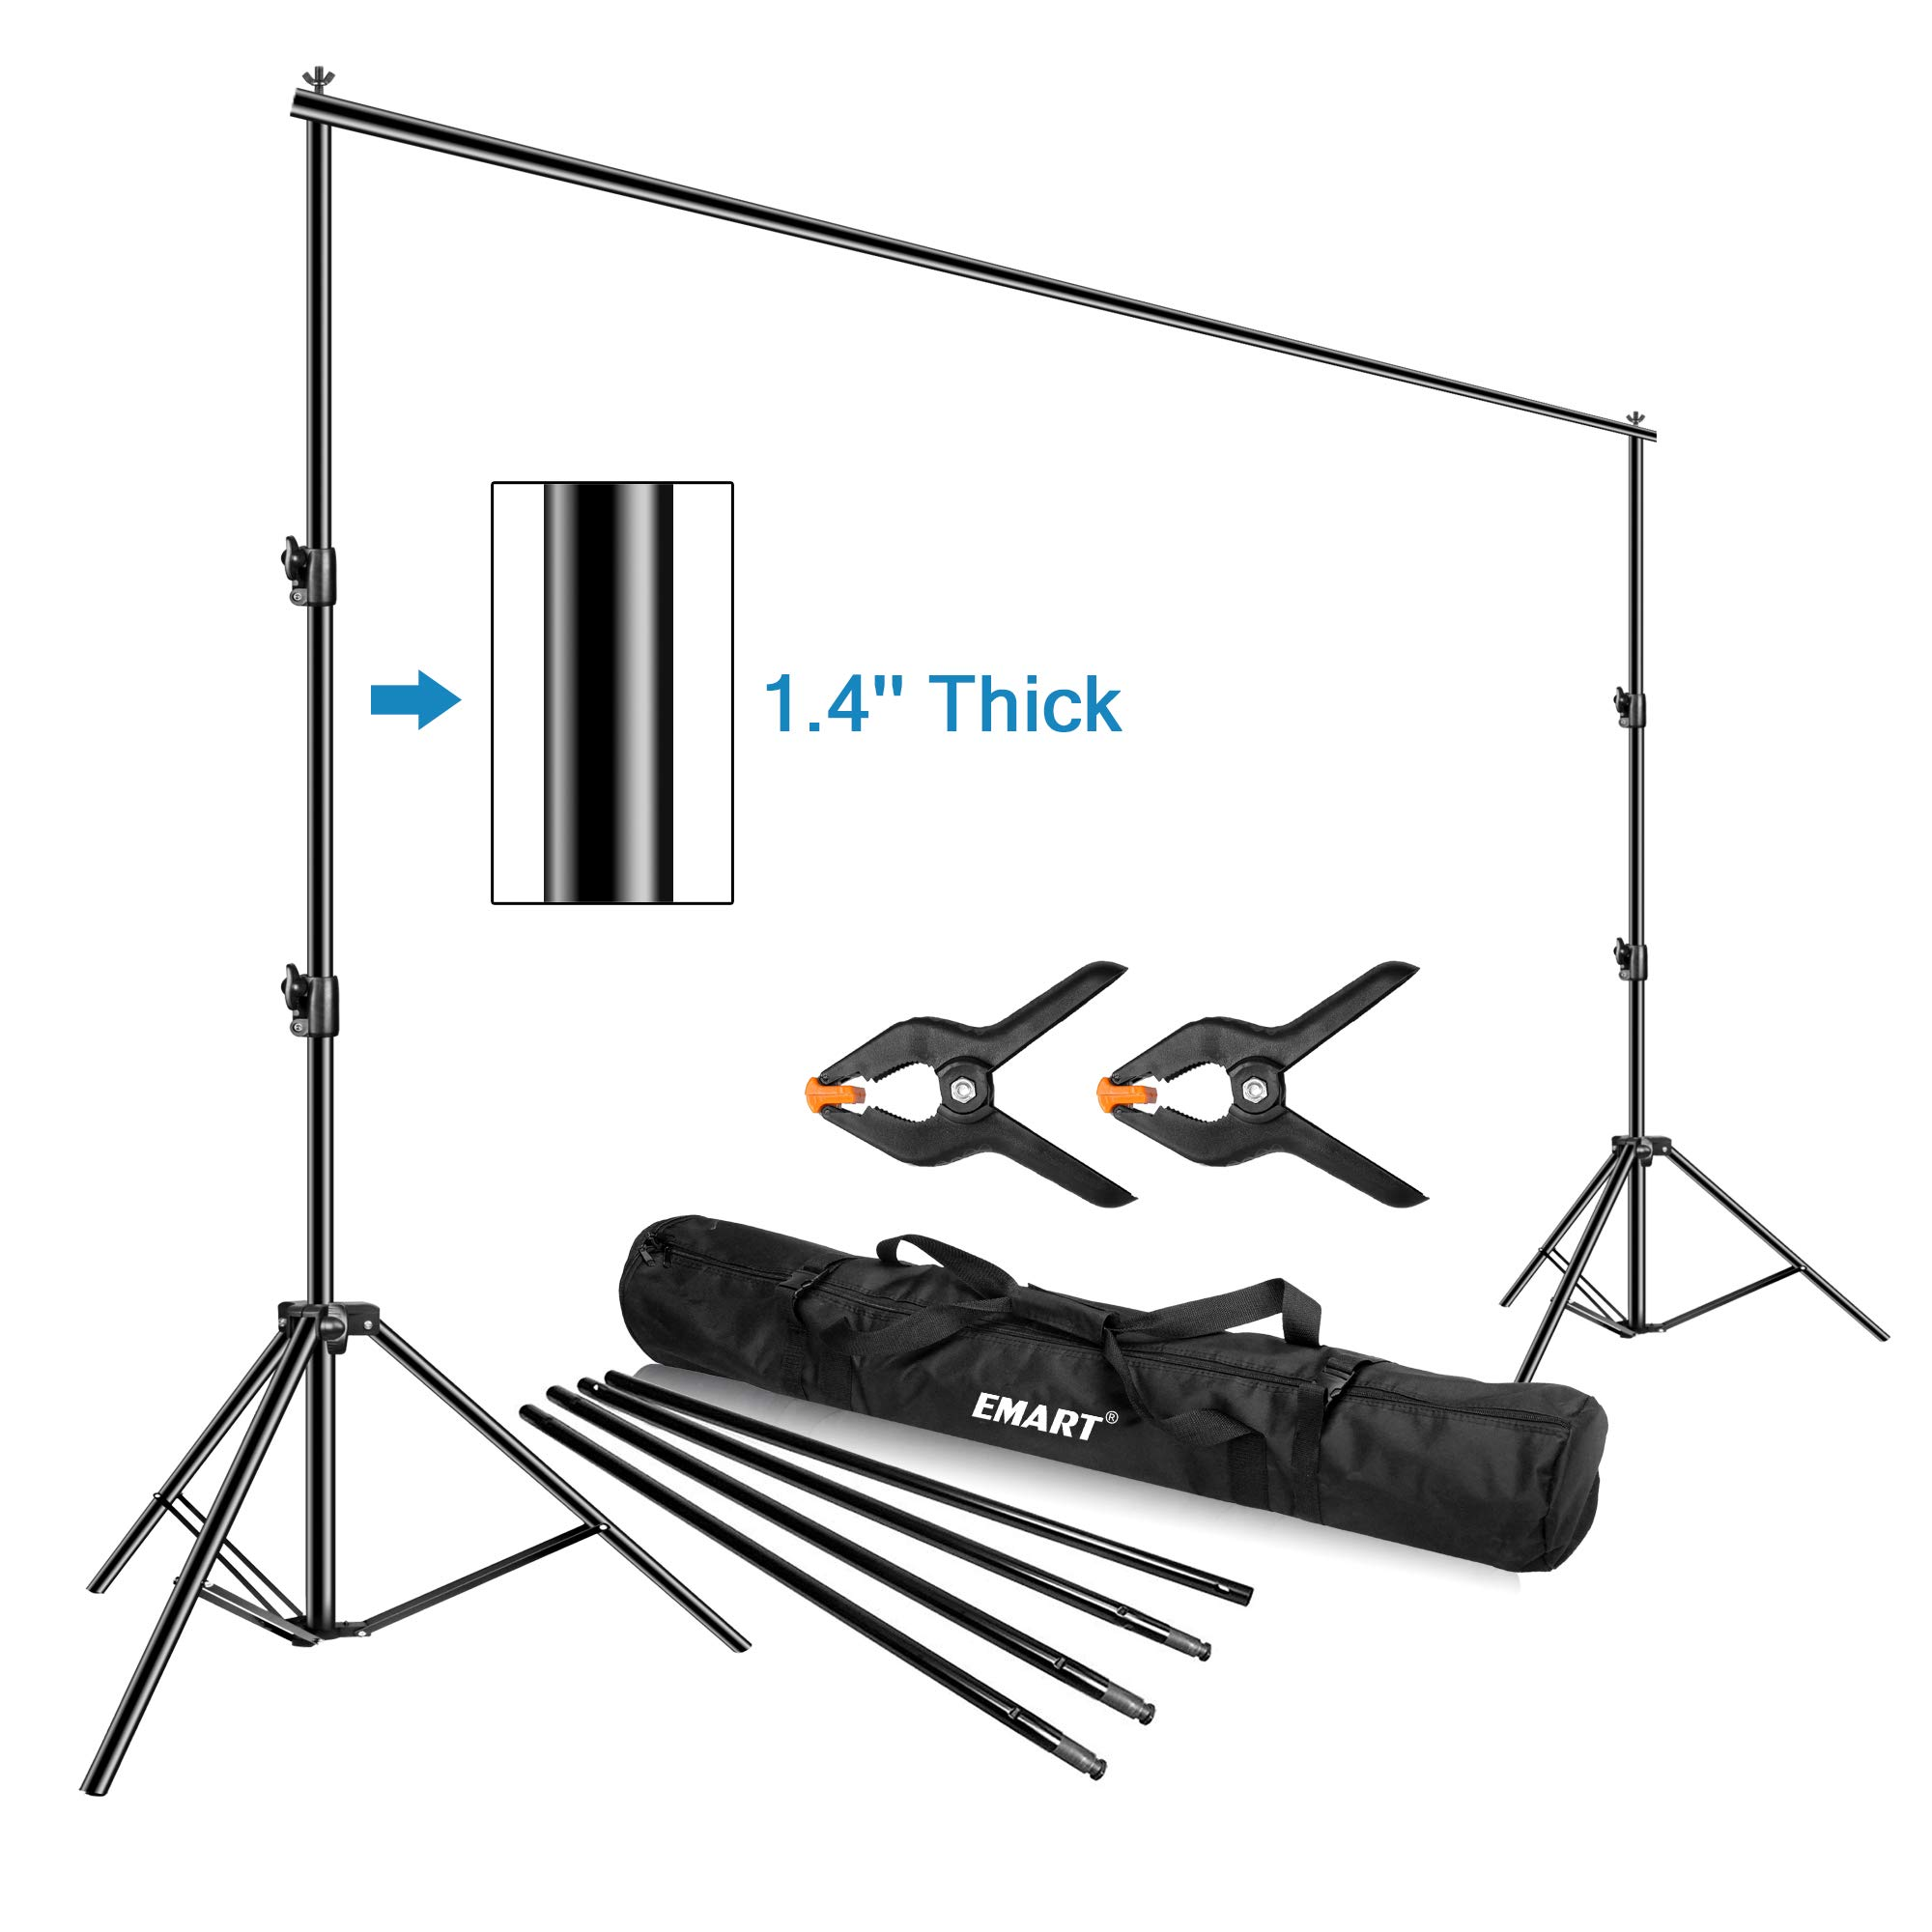 Emart Photo Video Studio Backdrop Stand, 10 x 12ft Heavy Duty Adjustable Photography Muslin Background Support System Kit by EMART